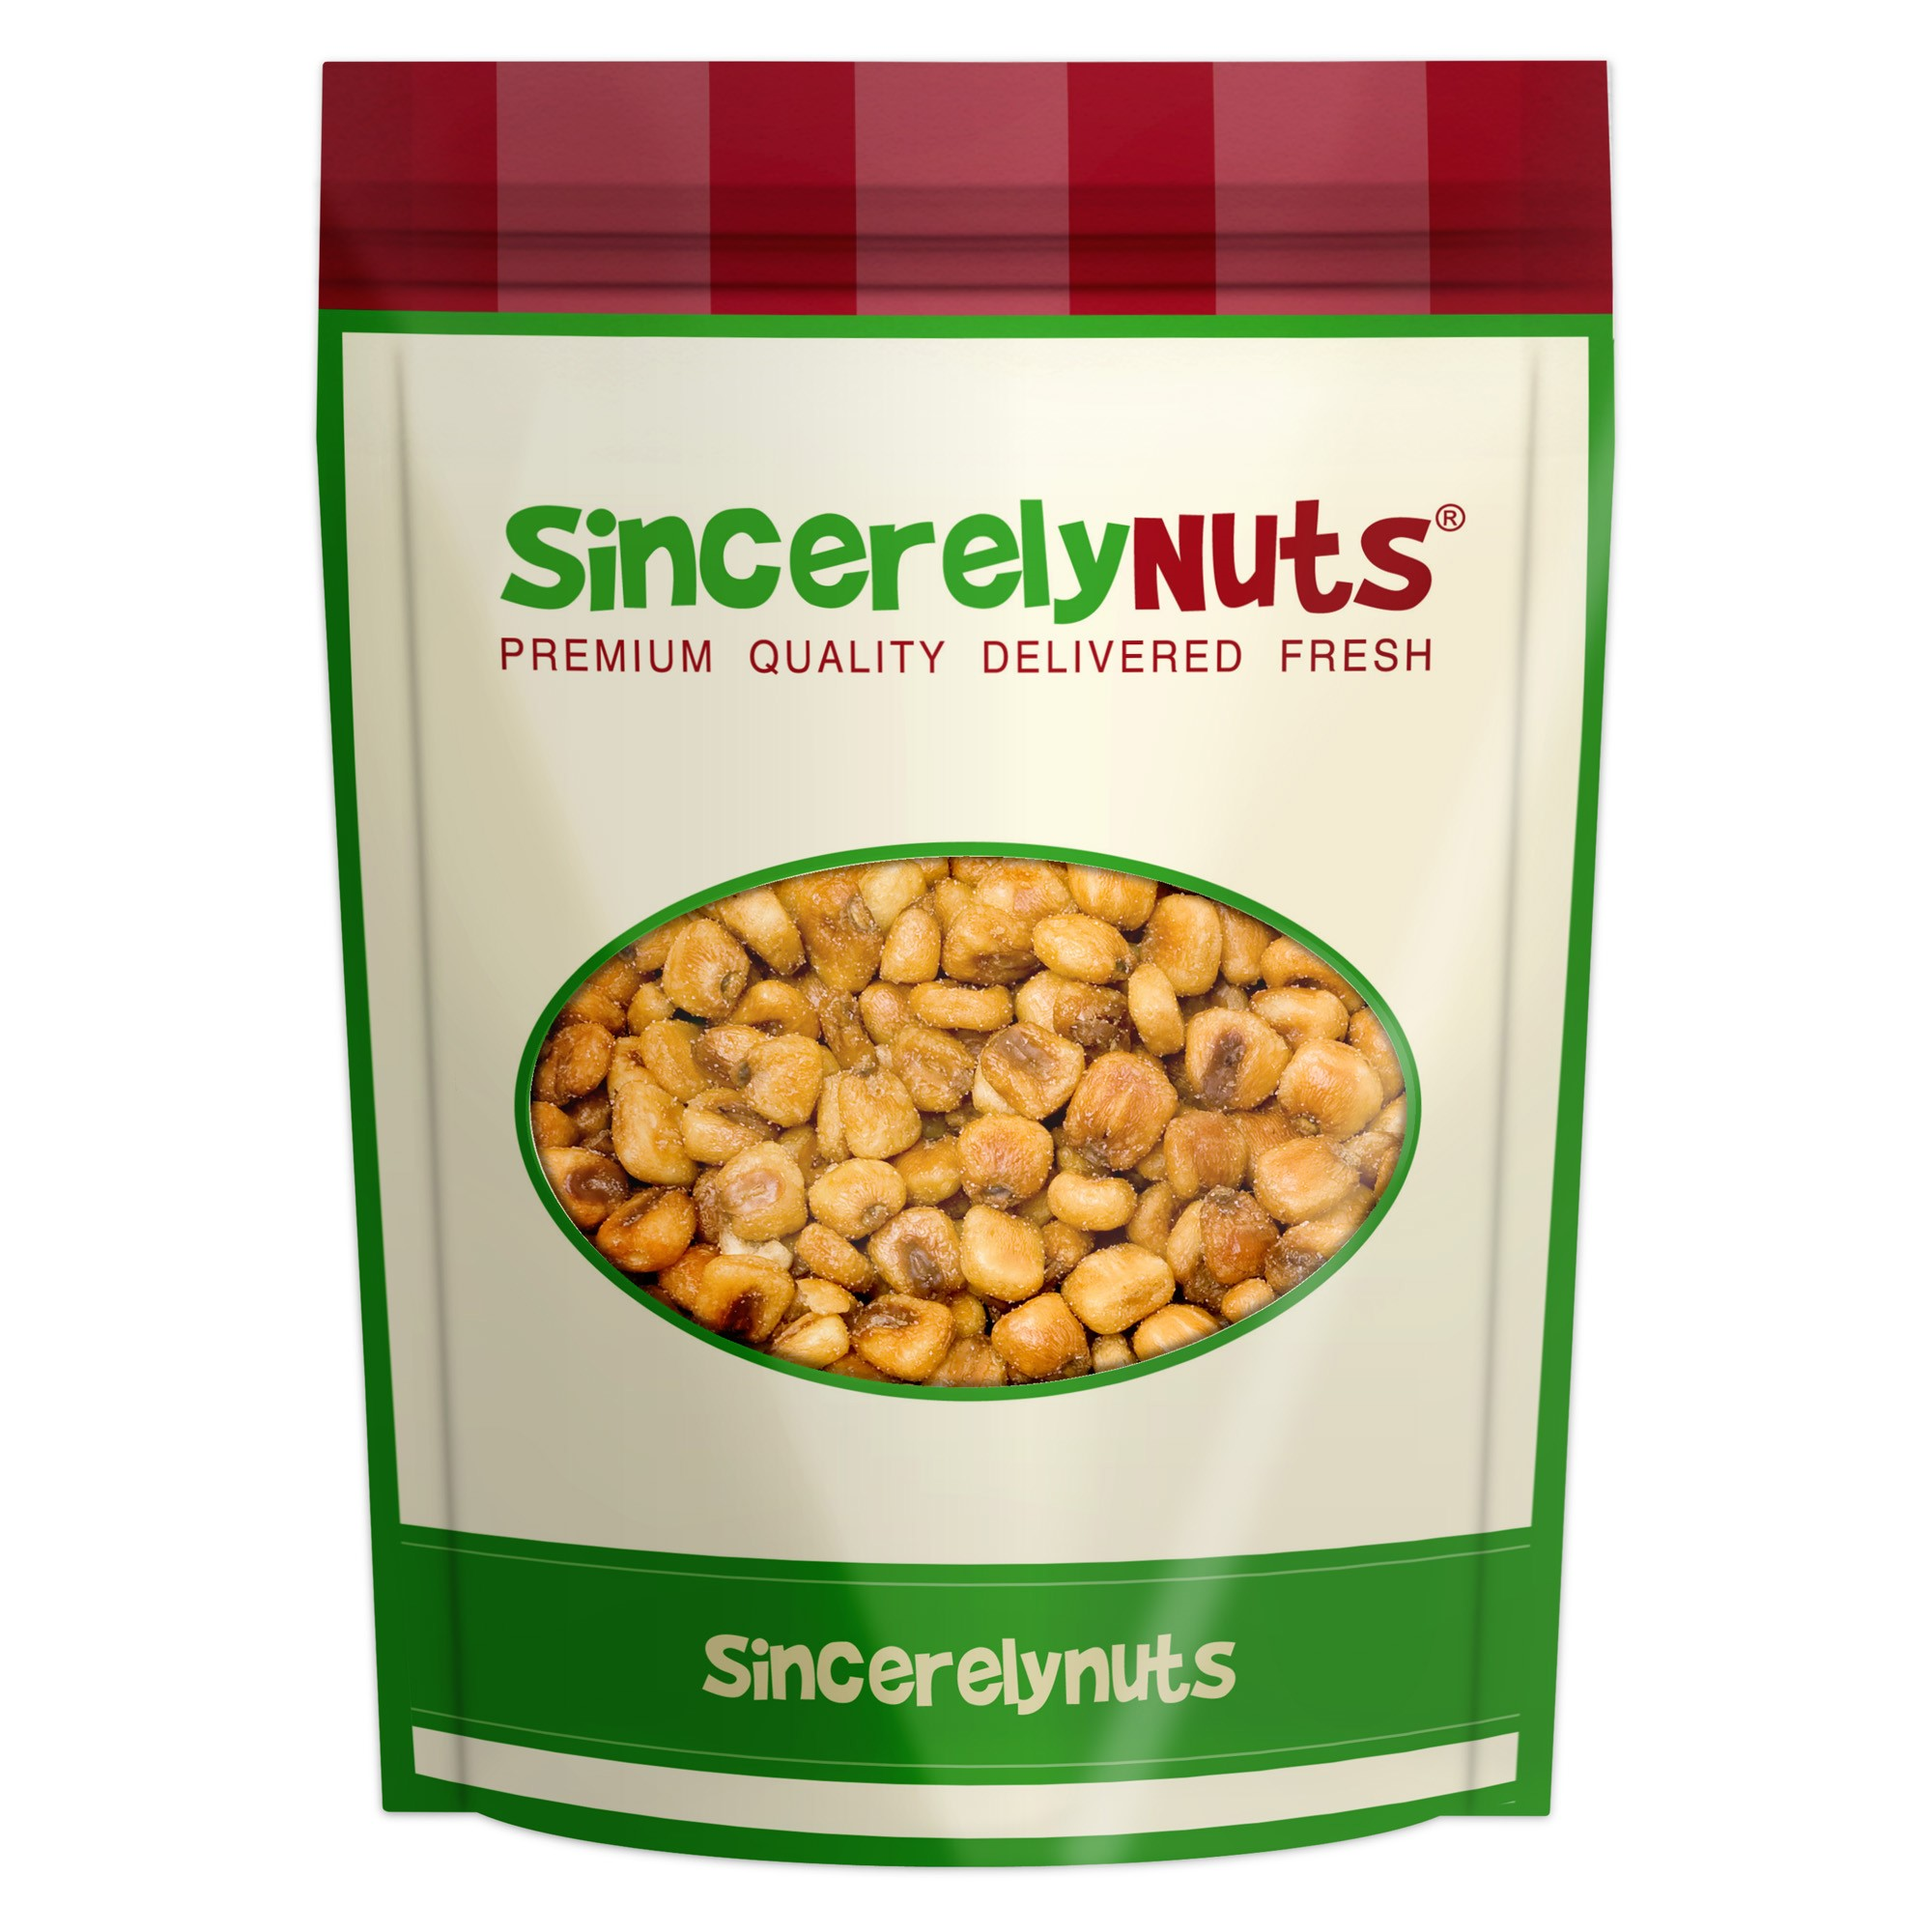 Sincerely Nuts Corn Nuts, Roasted and Salted, 5 lb